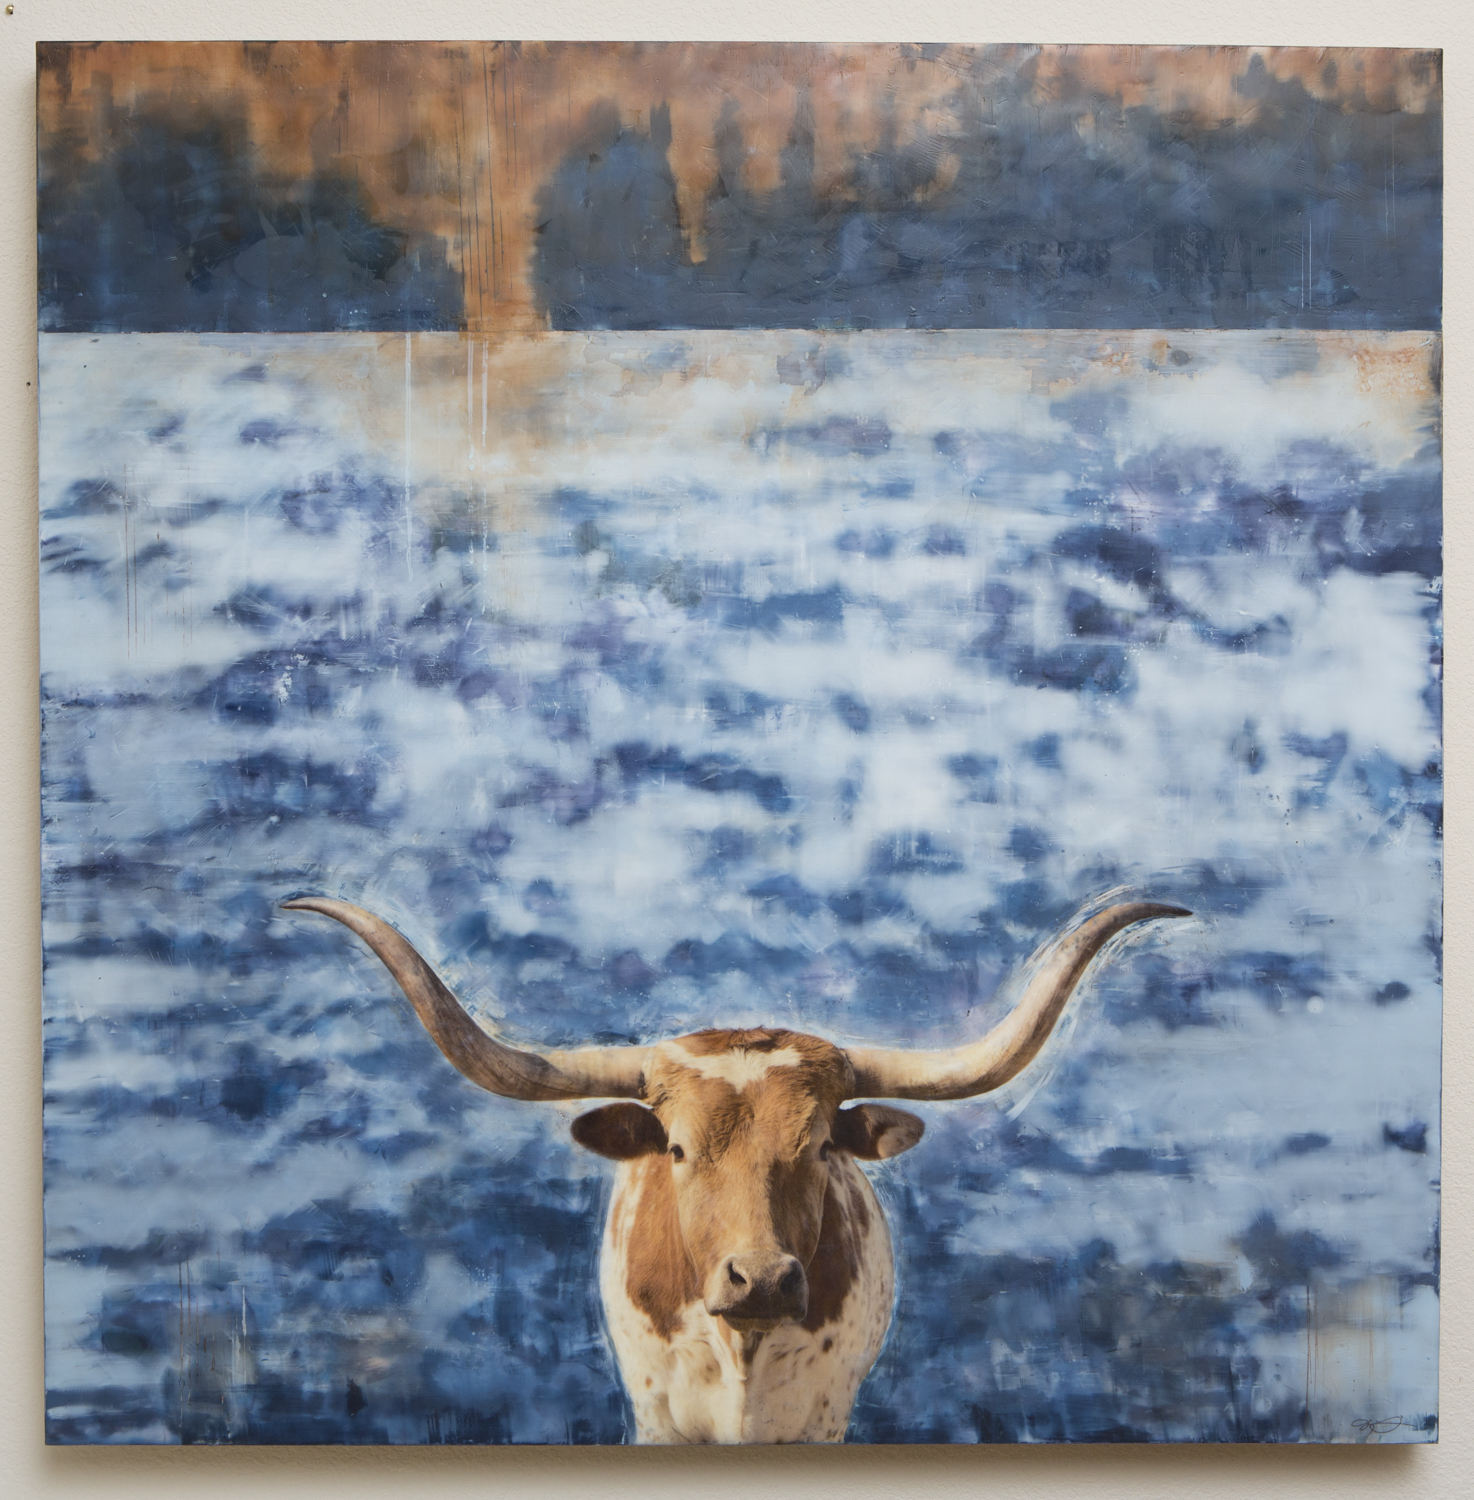 "Gaze 40""x40"" 2017  Longhorn with blues and browns. Bees wax, resin, pigments on birch panel."